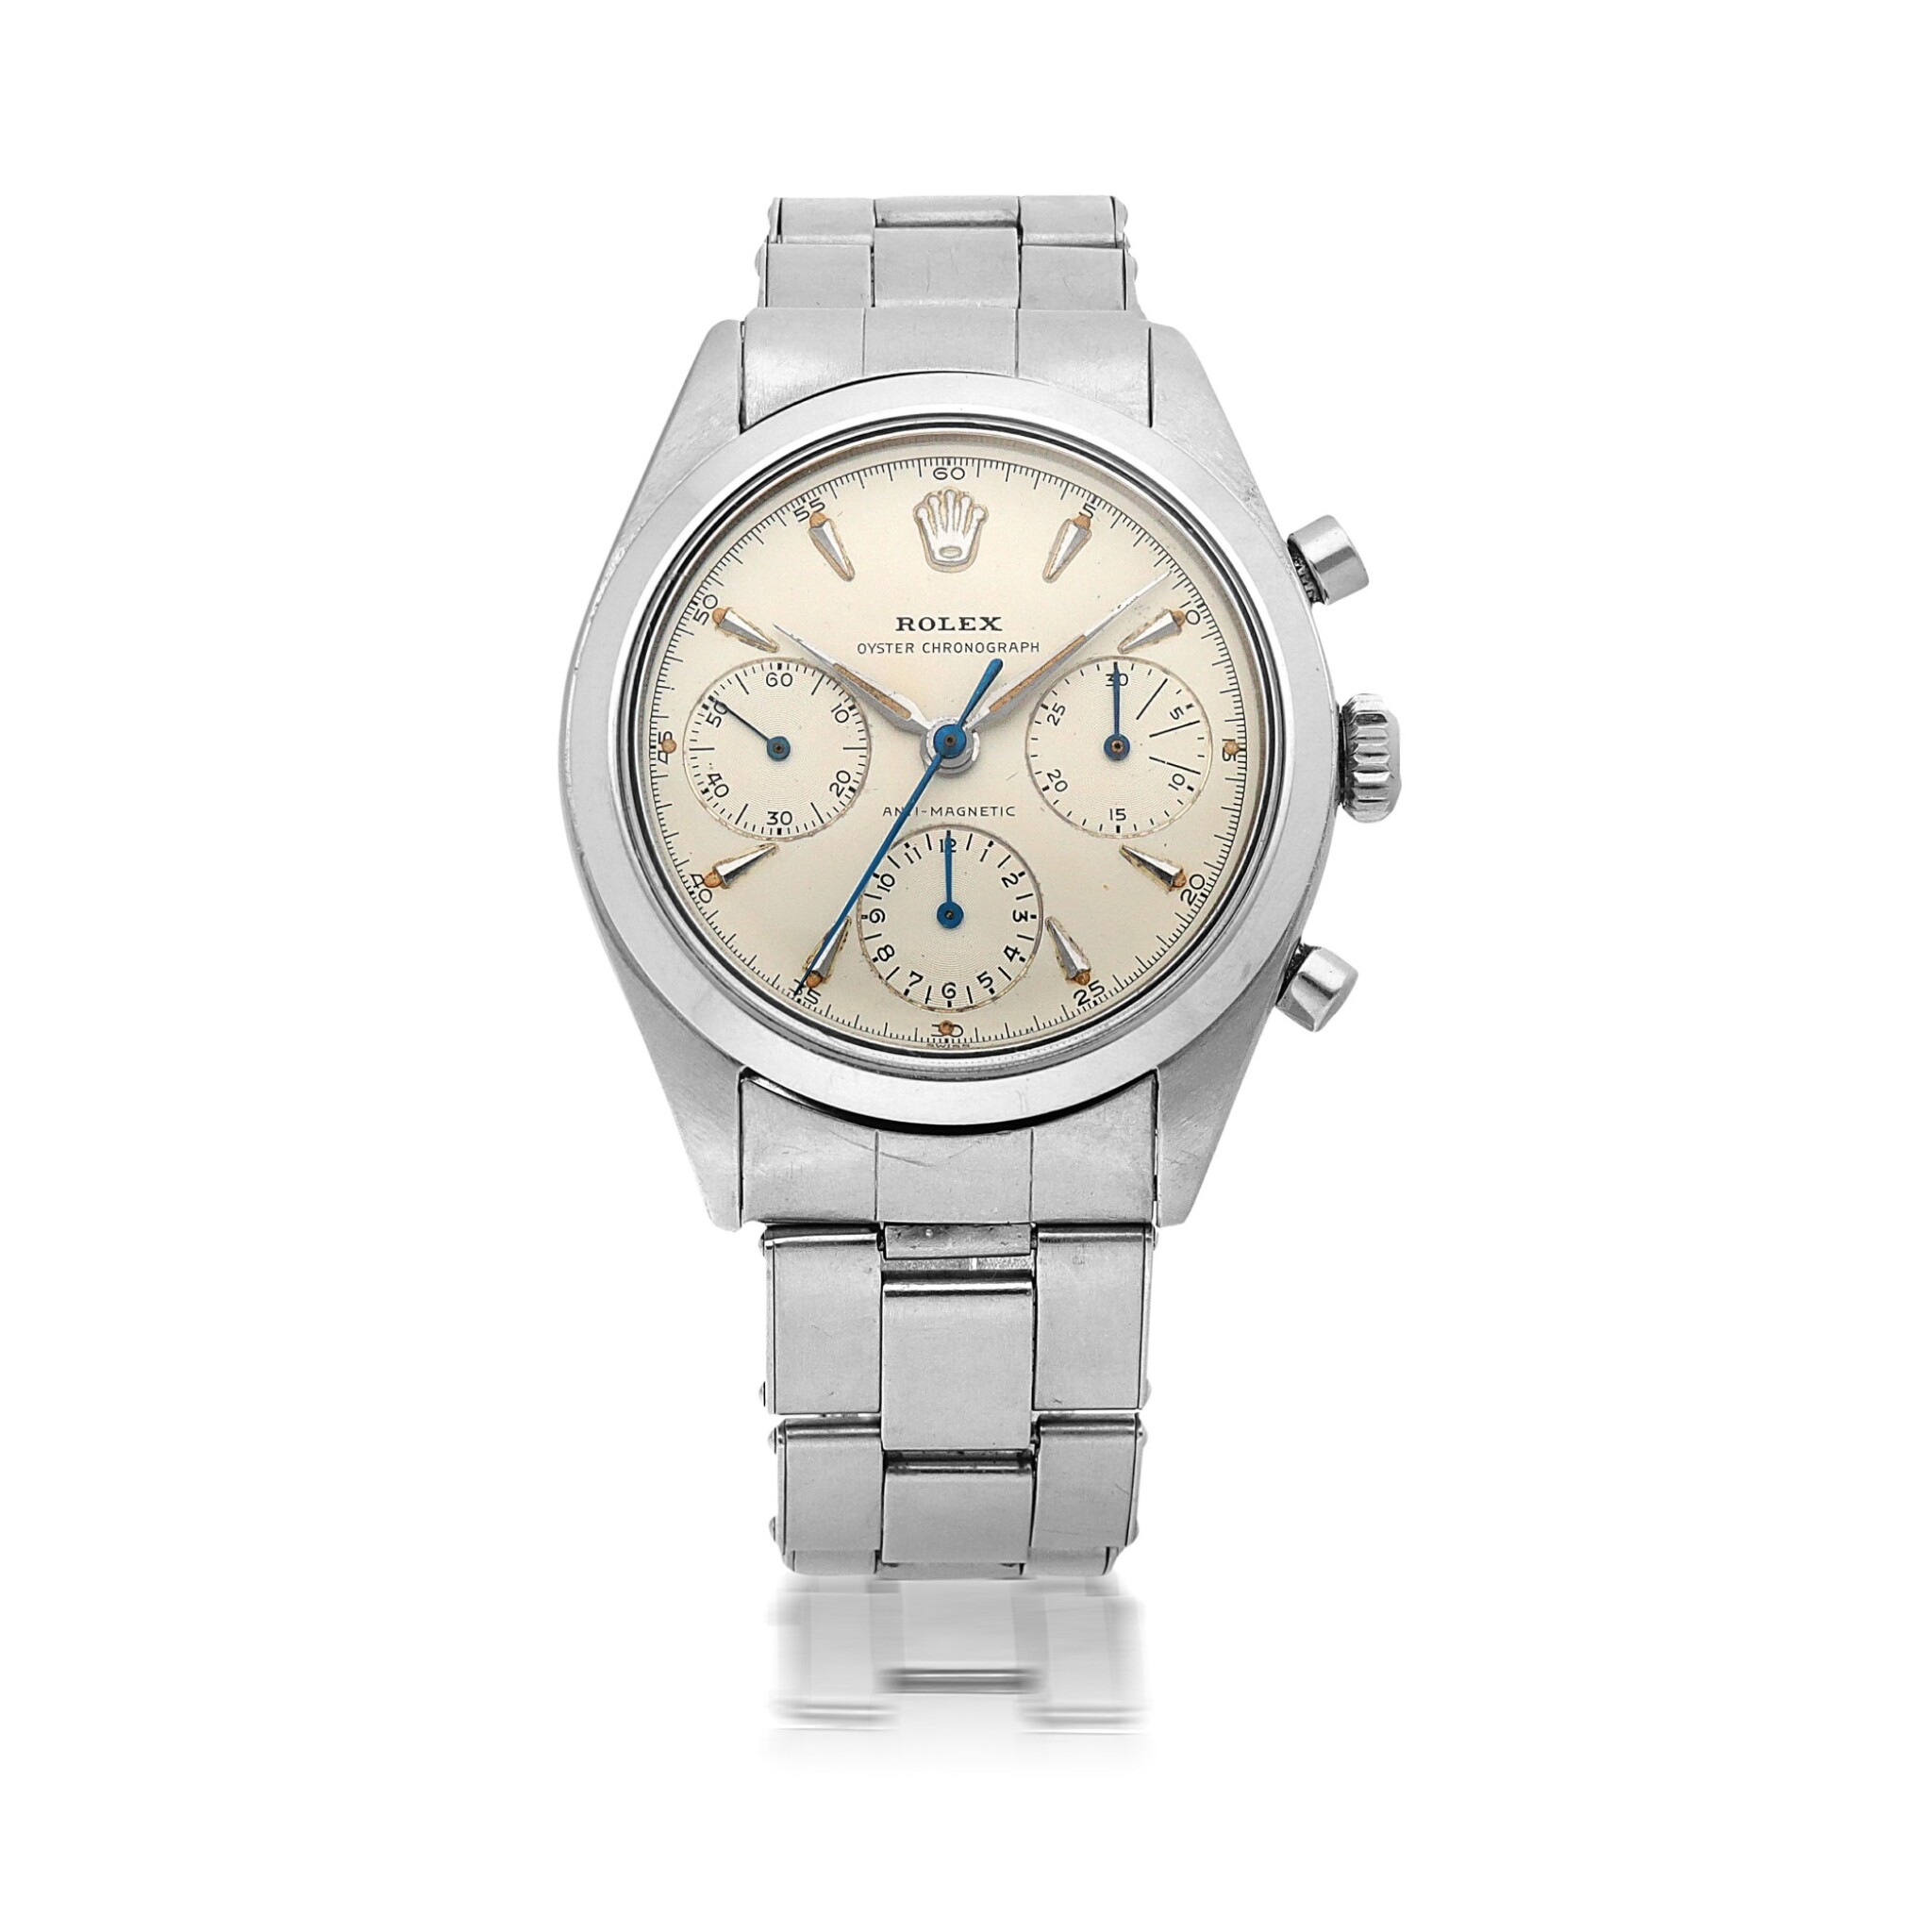 View full screen - View 1 of Lot 401. ROLEX   'PRE-DAYTONA', REF 6238 STAINLESS STEEL CHRONOGRAPH WRISTWATCH WITH BRACELET CIRCA 1963.